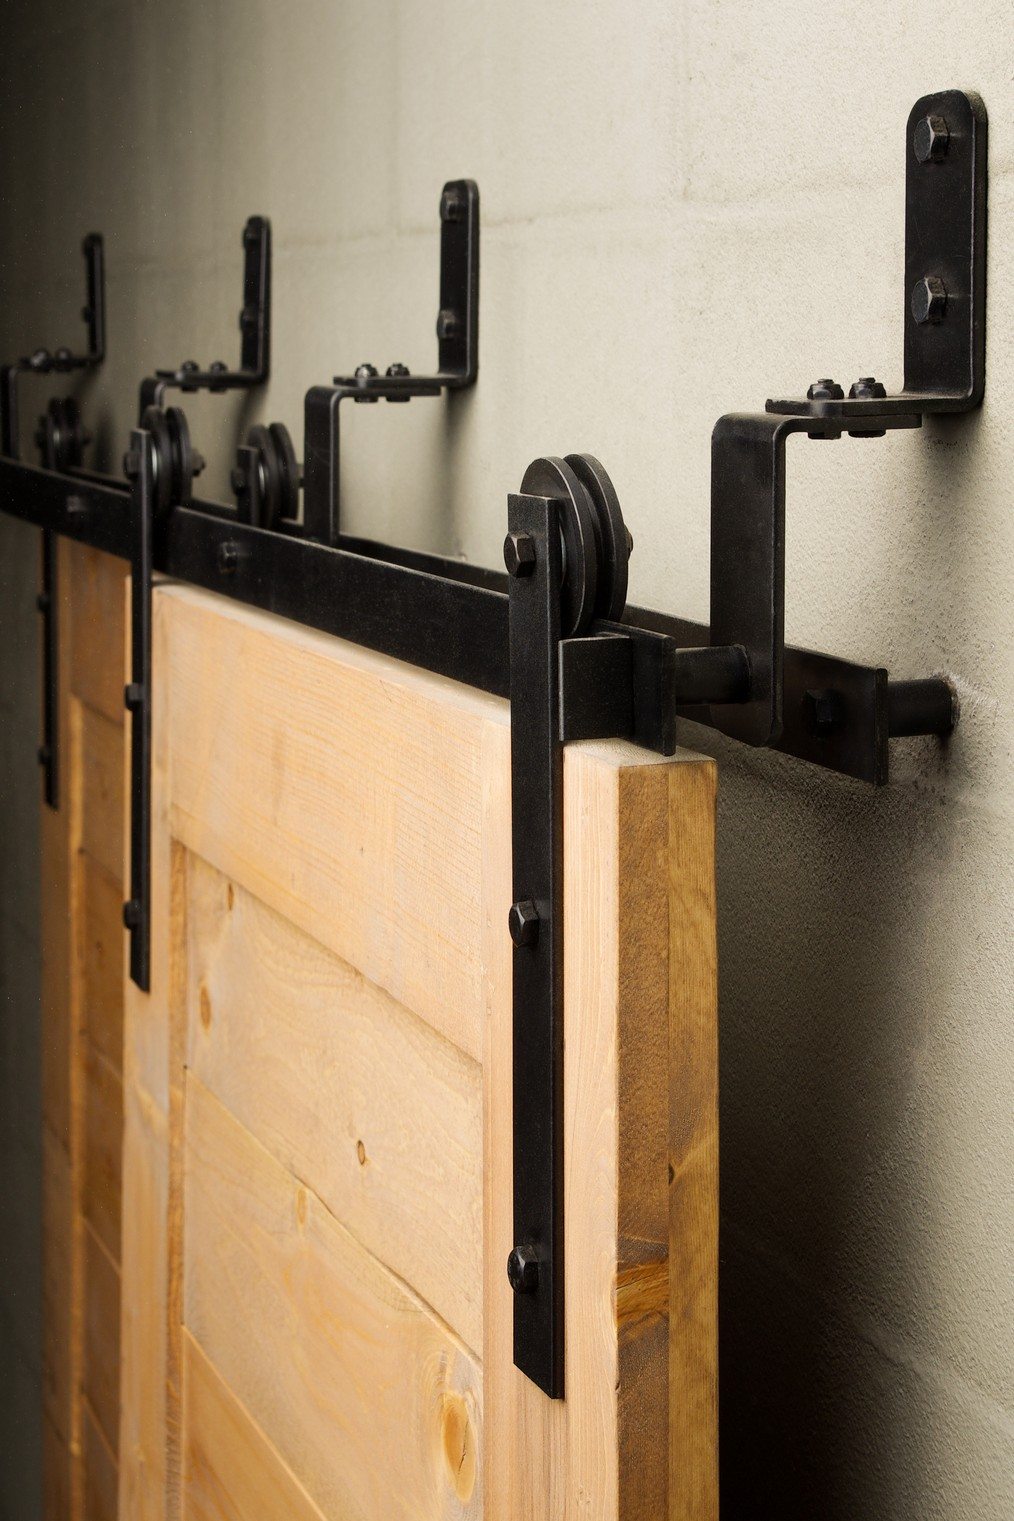 21 Exciting ways to use sliding door hardware to spruce up